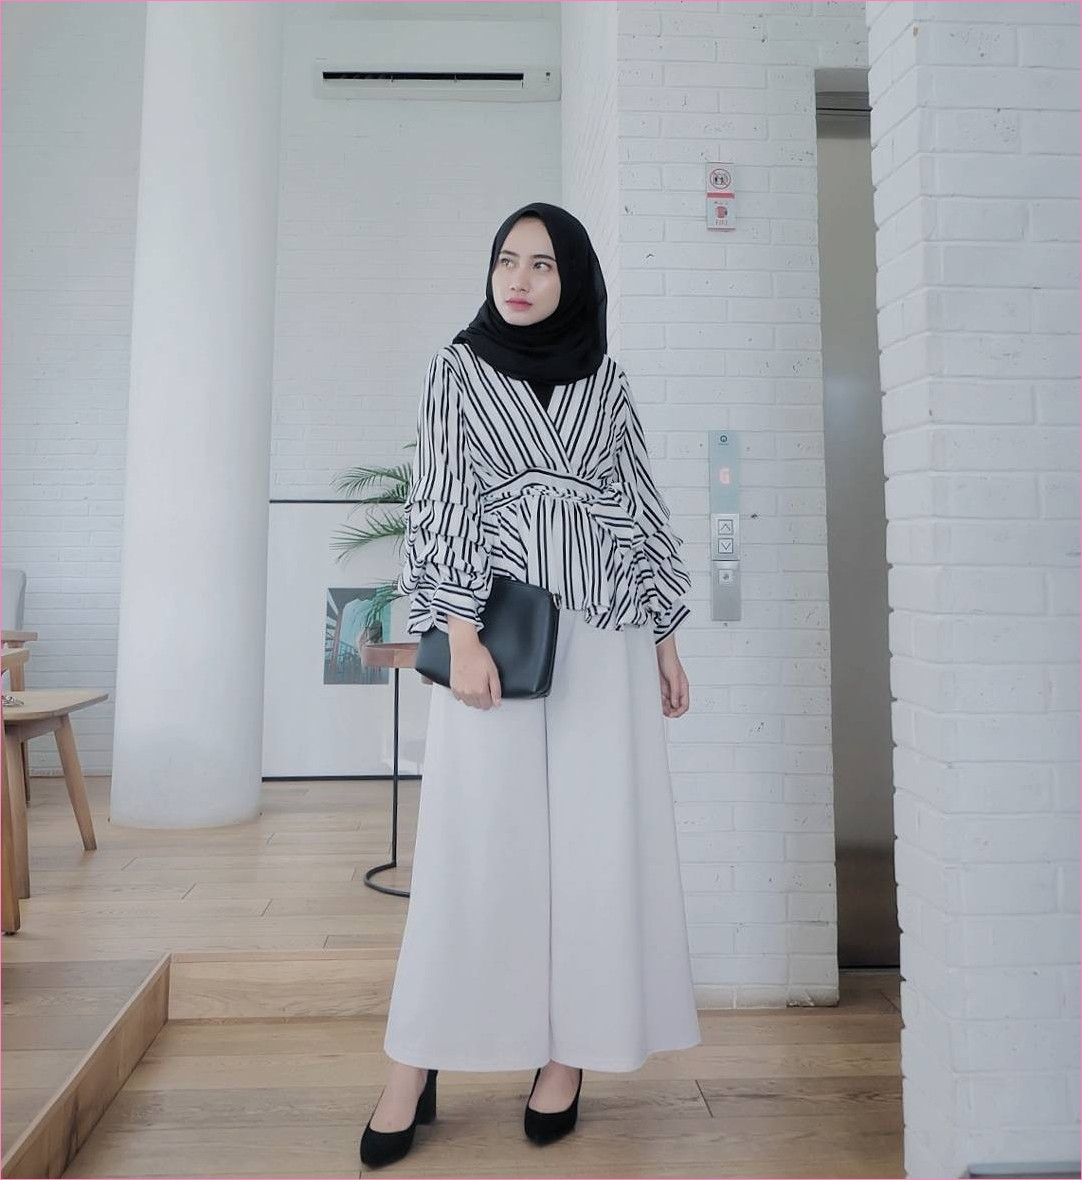 Outfit Celana Cullotes Untuk Hijabers Ala Selebgram 2018 top blouse stipe mangset high heels wedges loafers and slip ons cullotes pallazo putih hijab pashmina diamond ciput rajut clutch dompet ootd trendy